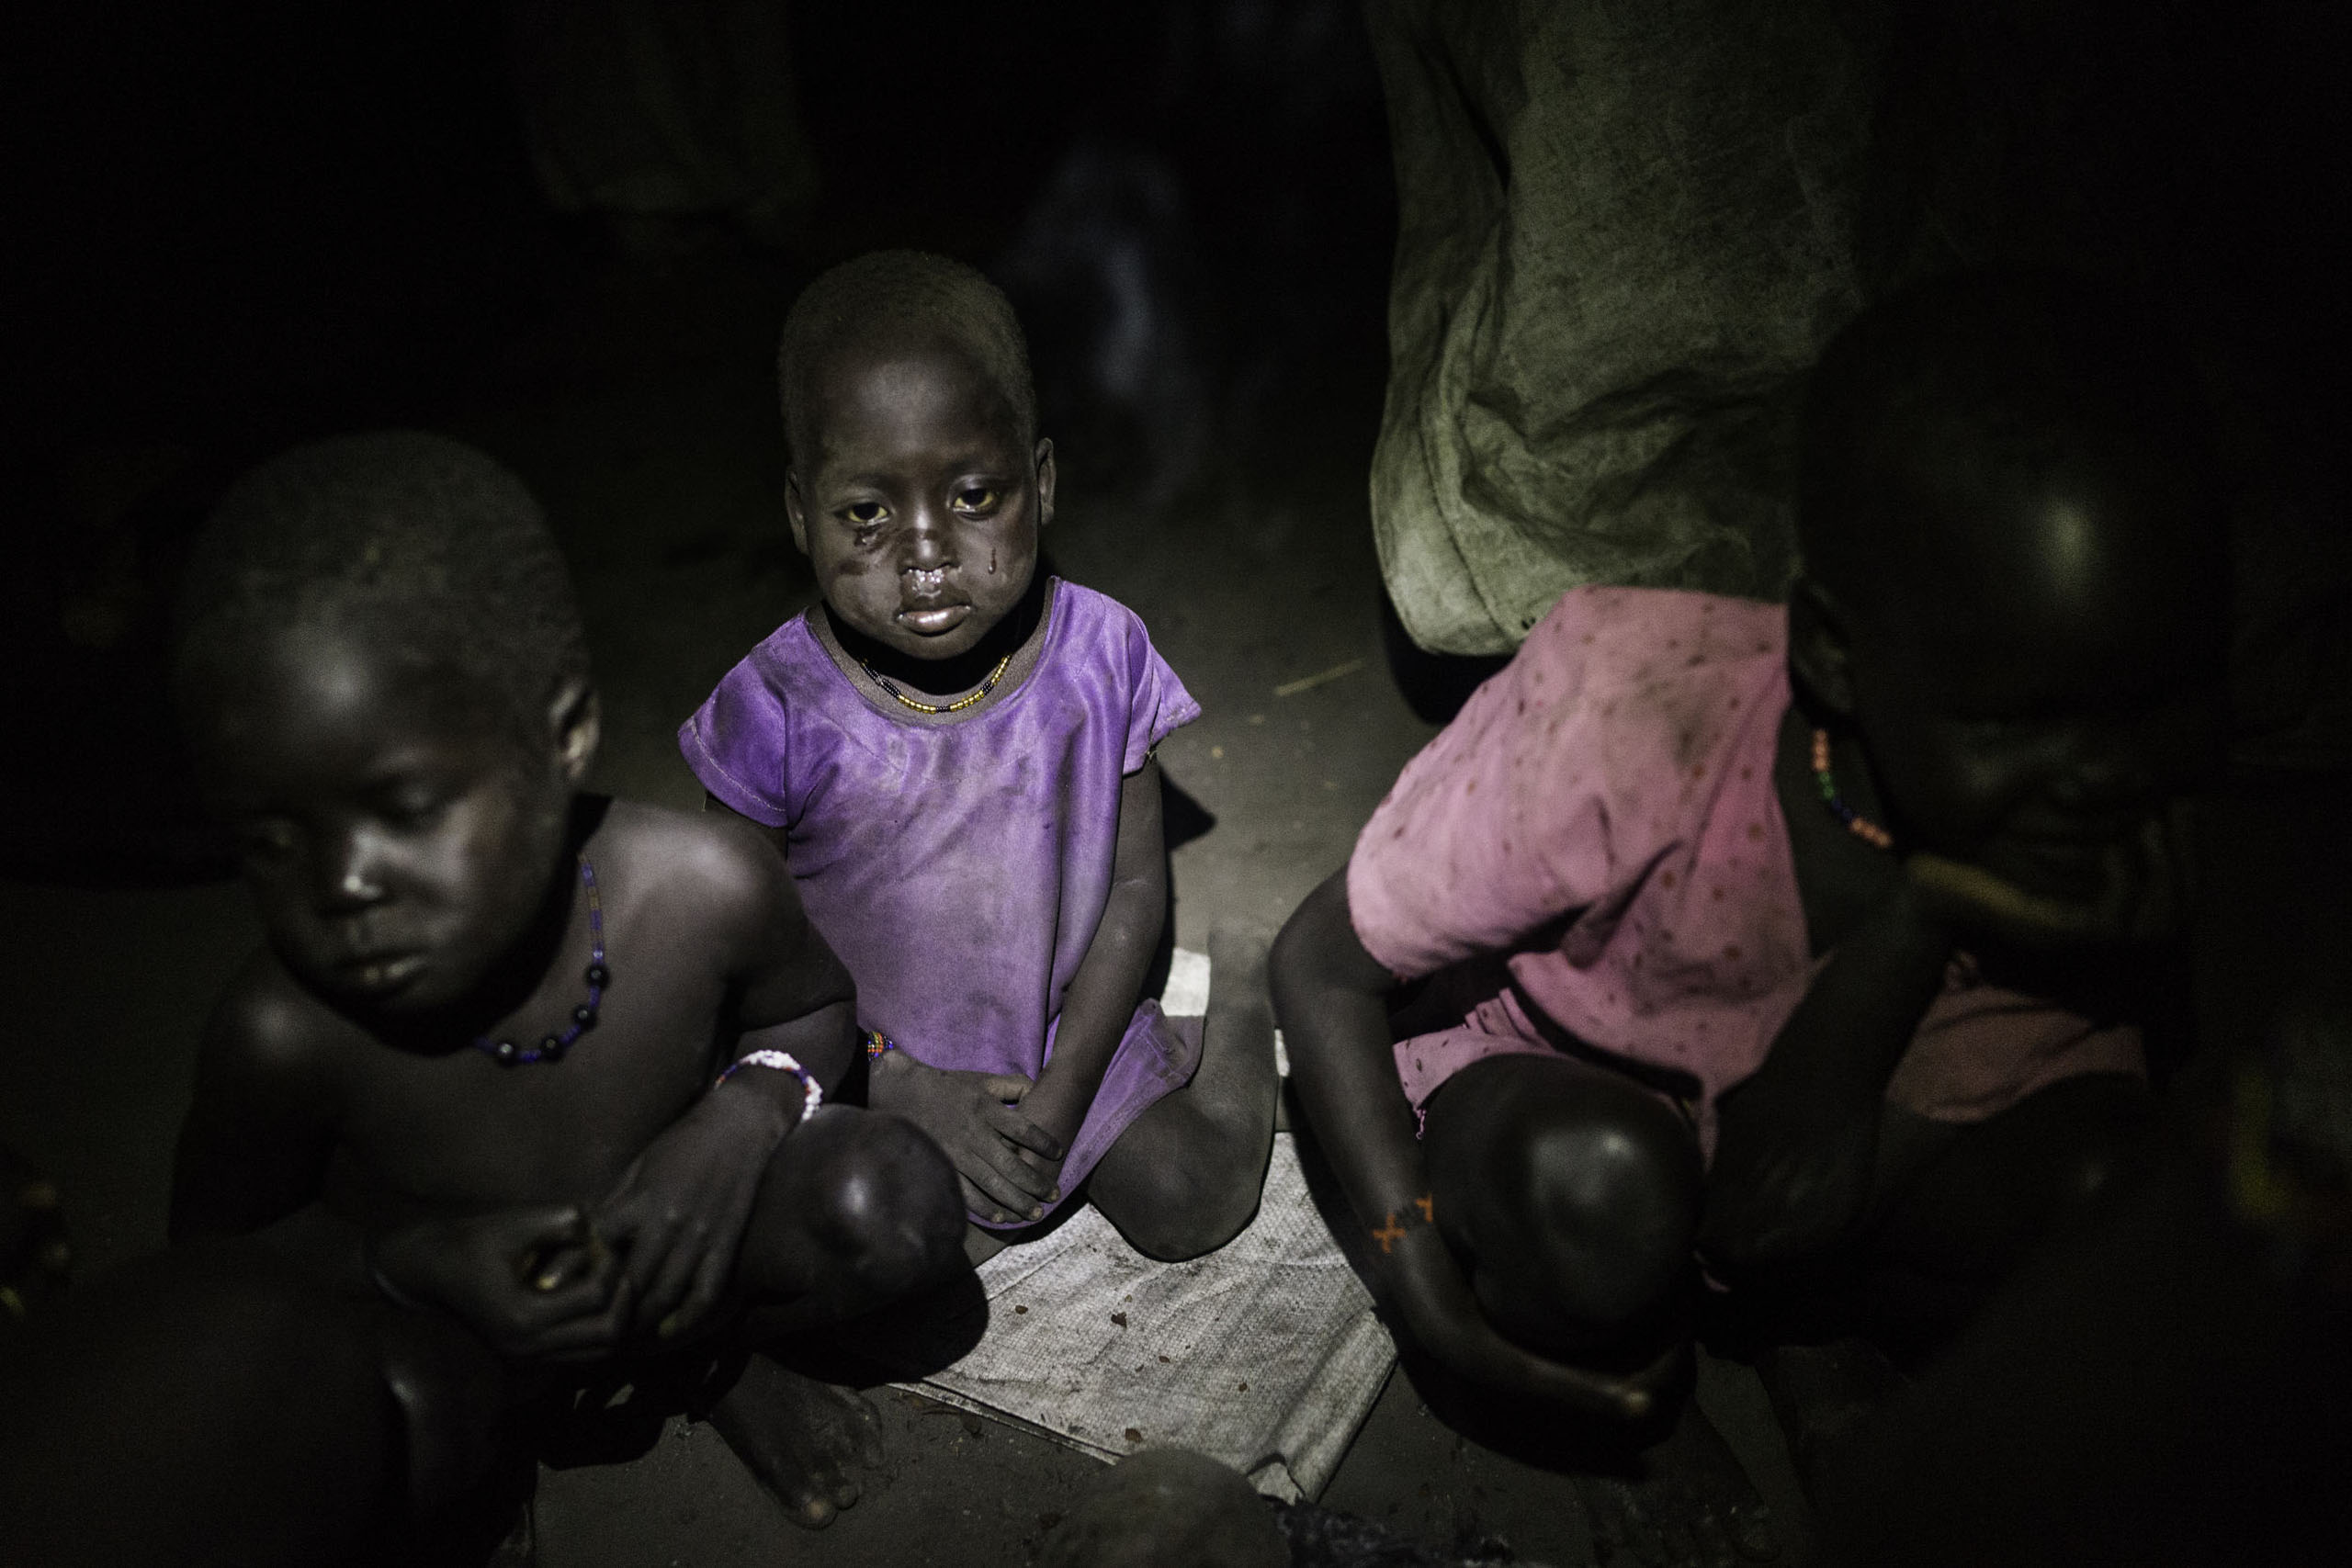 A child cries after walking through the cold swamps at night after collecting long awaited food distribution, Kok Island, Unity State, South Sudan.